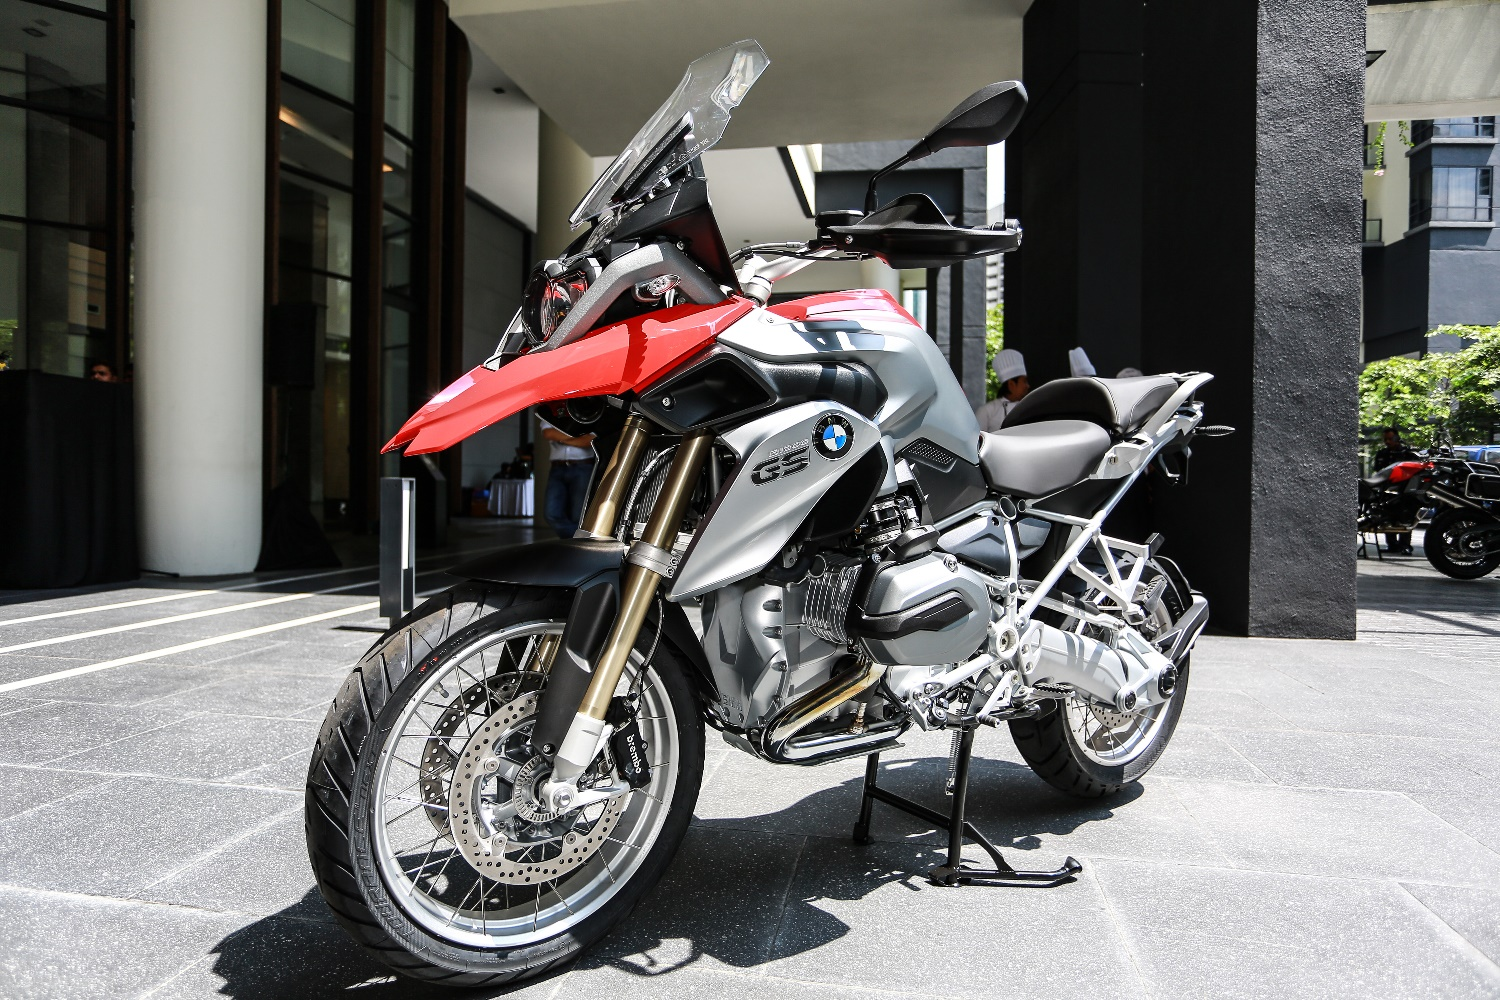 New Bmw R 1200 Gs Now In Malaysia From Rm125k